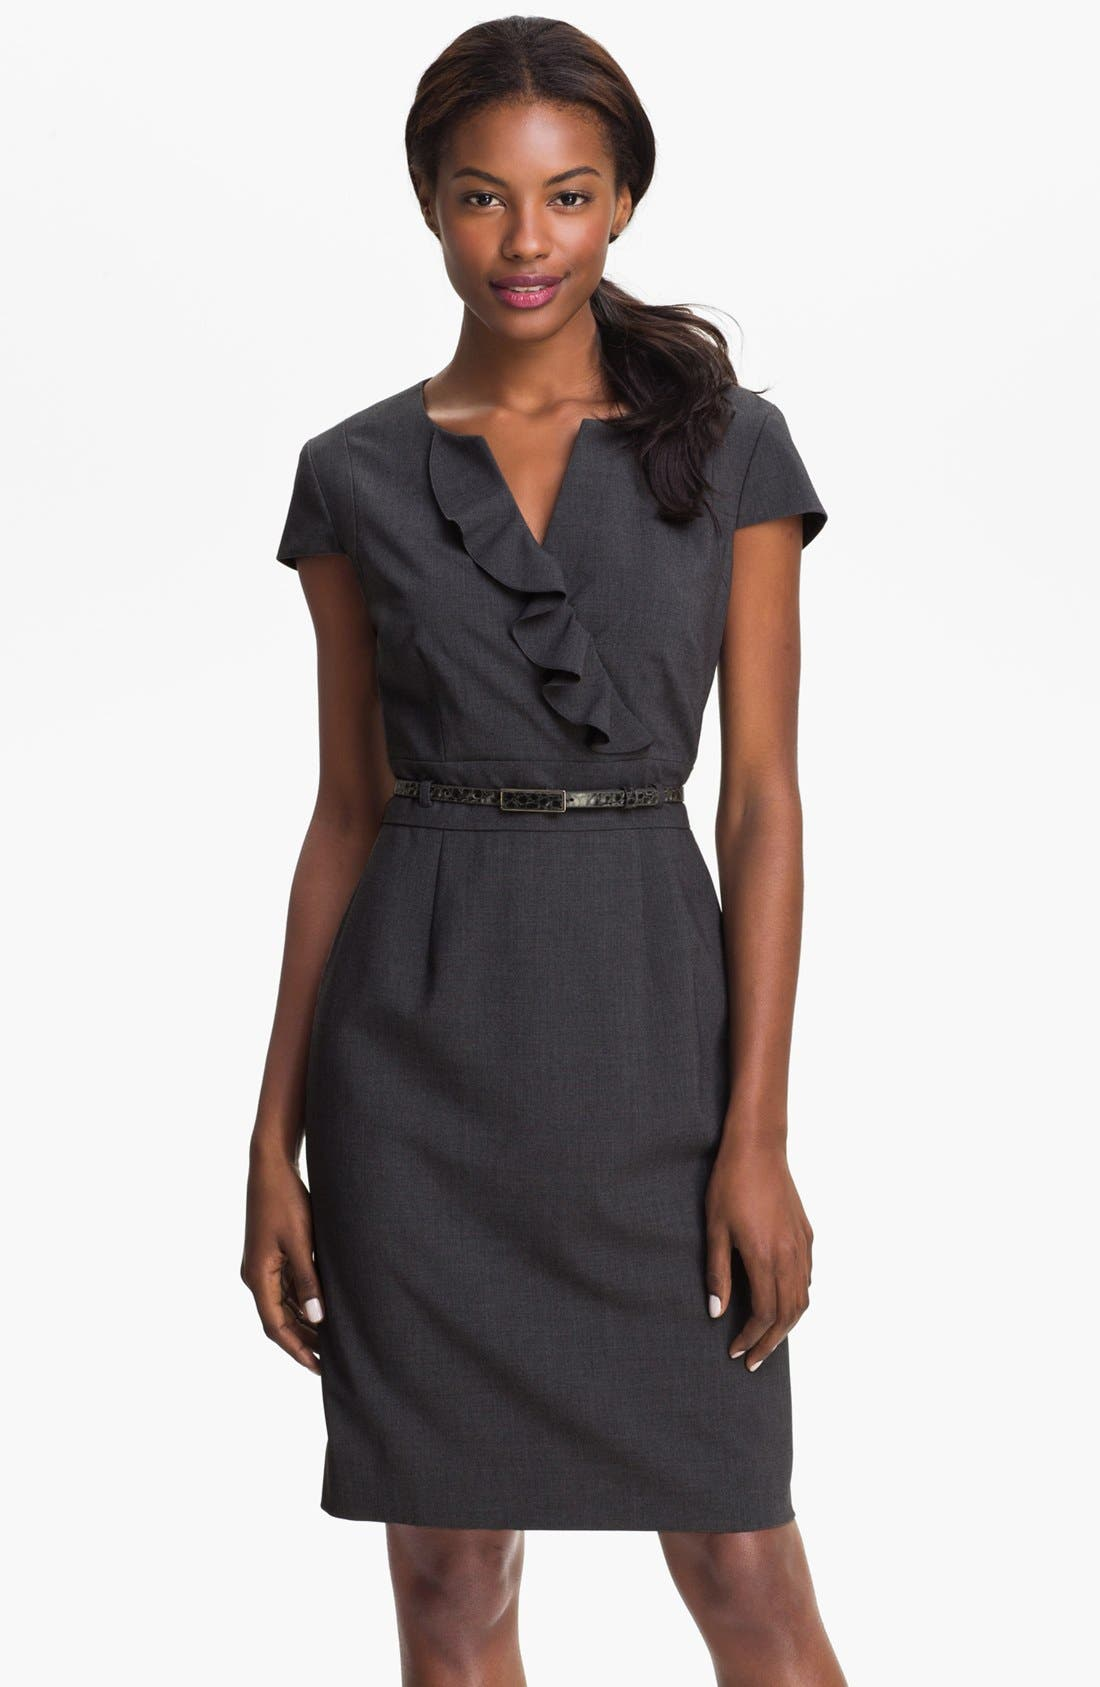 Alternate Image 1 Selected - Tahari 'Shelly' Ruffle Front Surplice Sheath Dress (Petite)